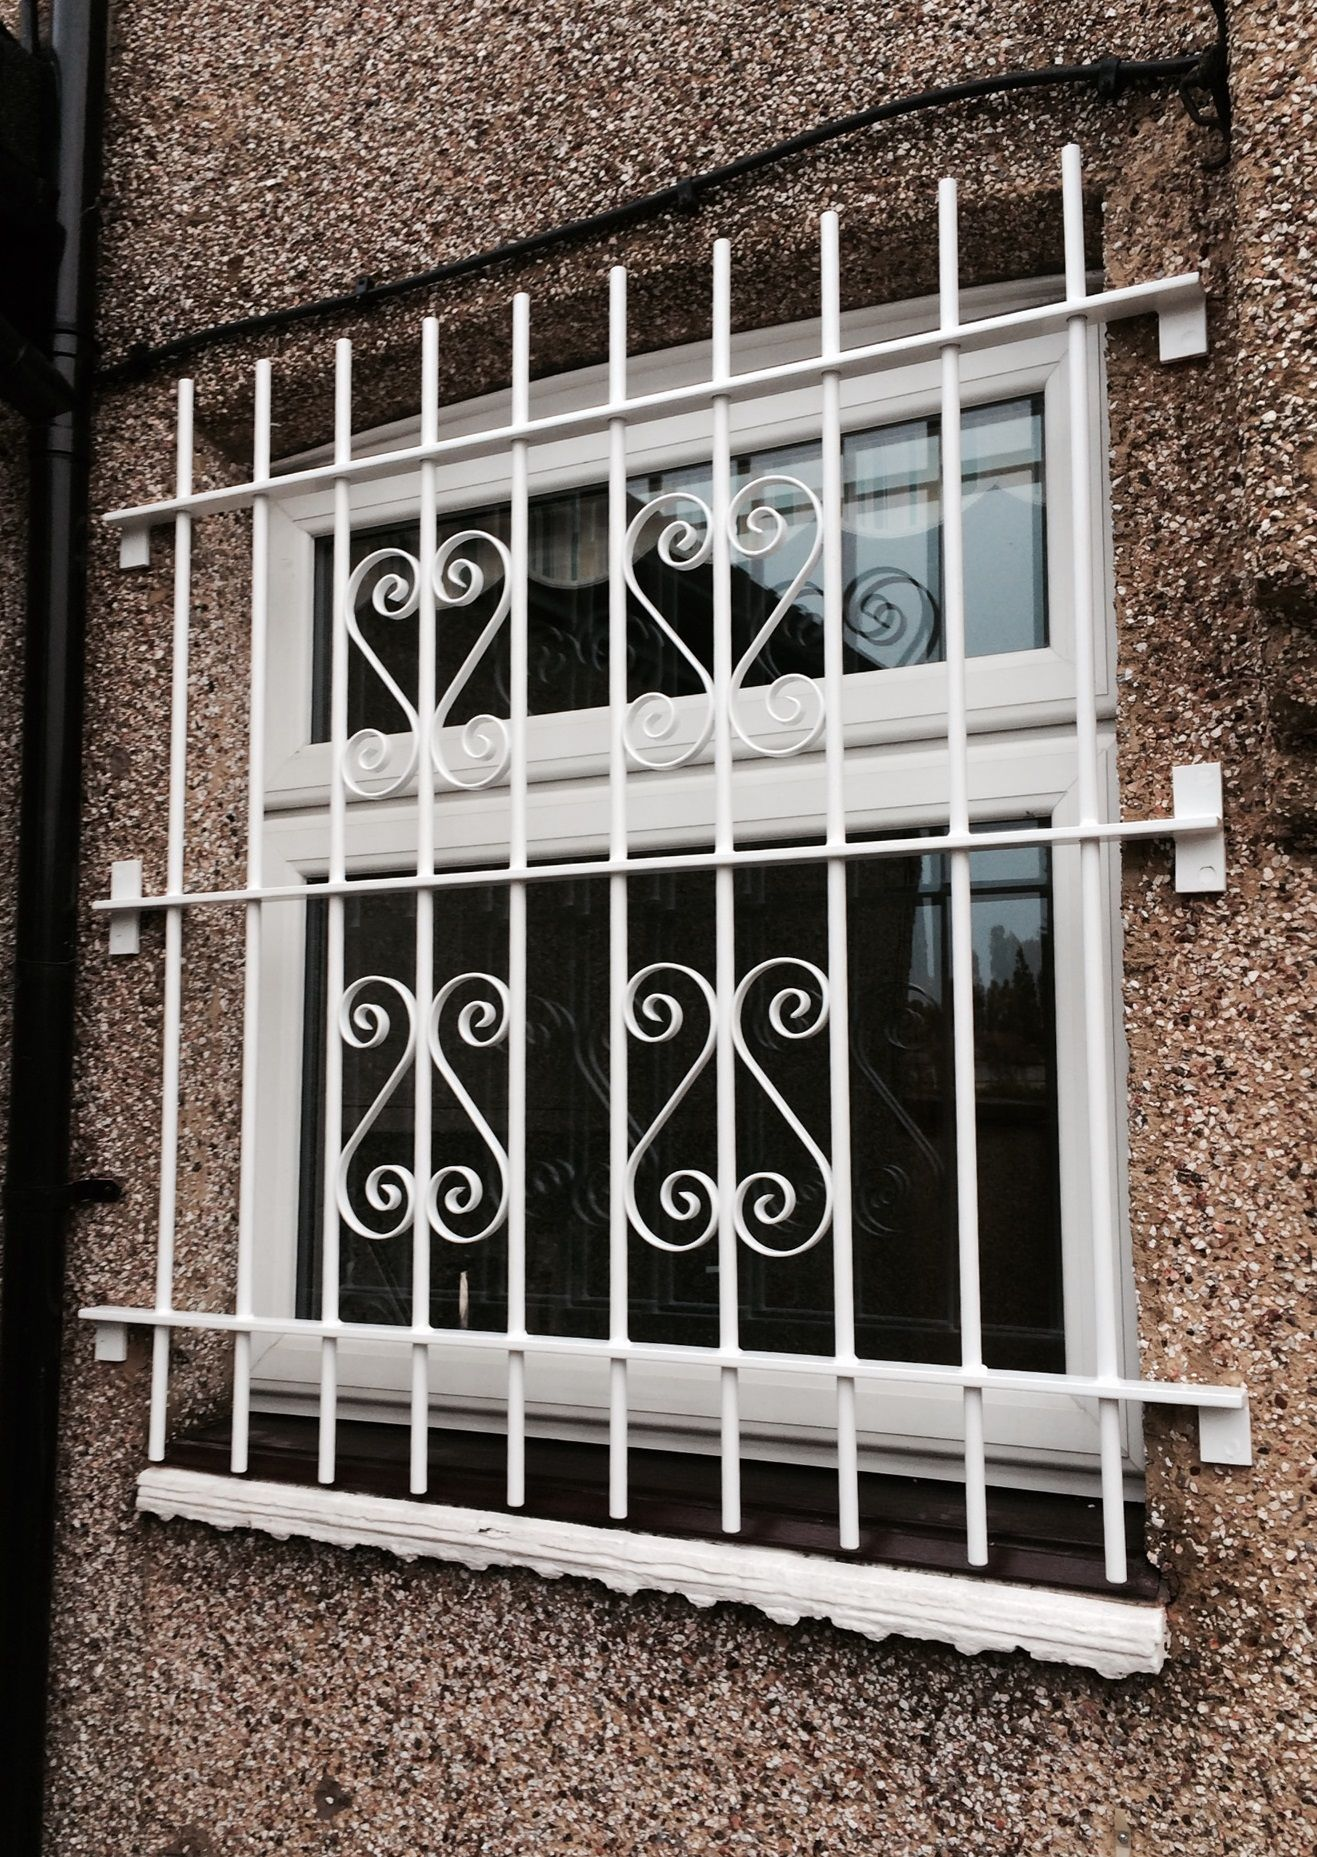 Decorative Security Grilles For Windows Rsg2000 Security Bars Fitted Externally To The Back Window Of A